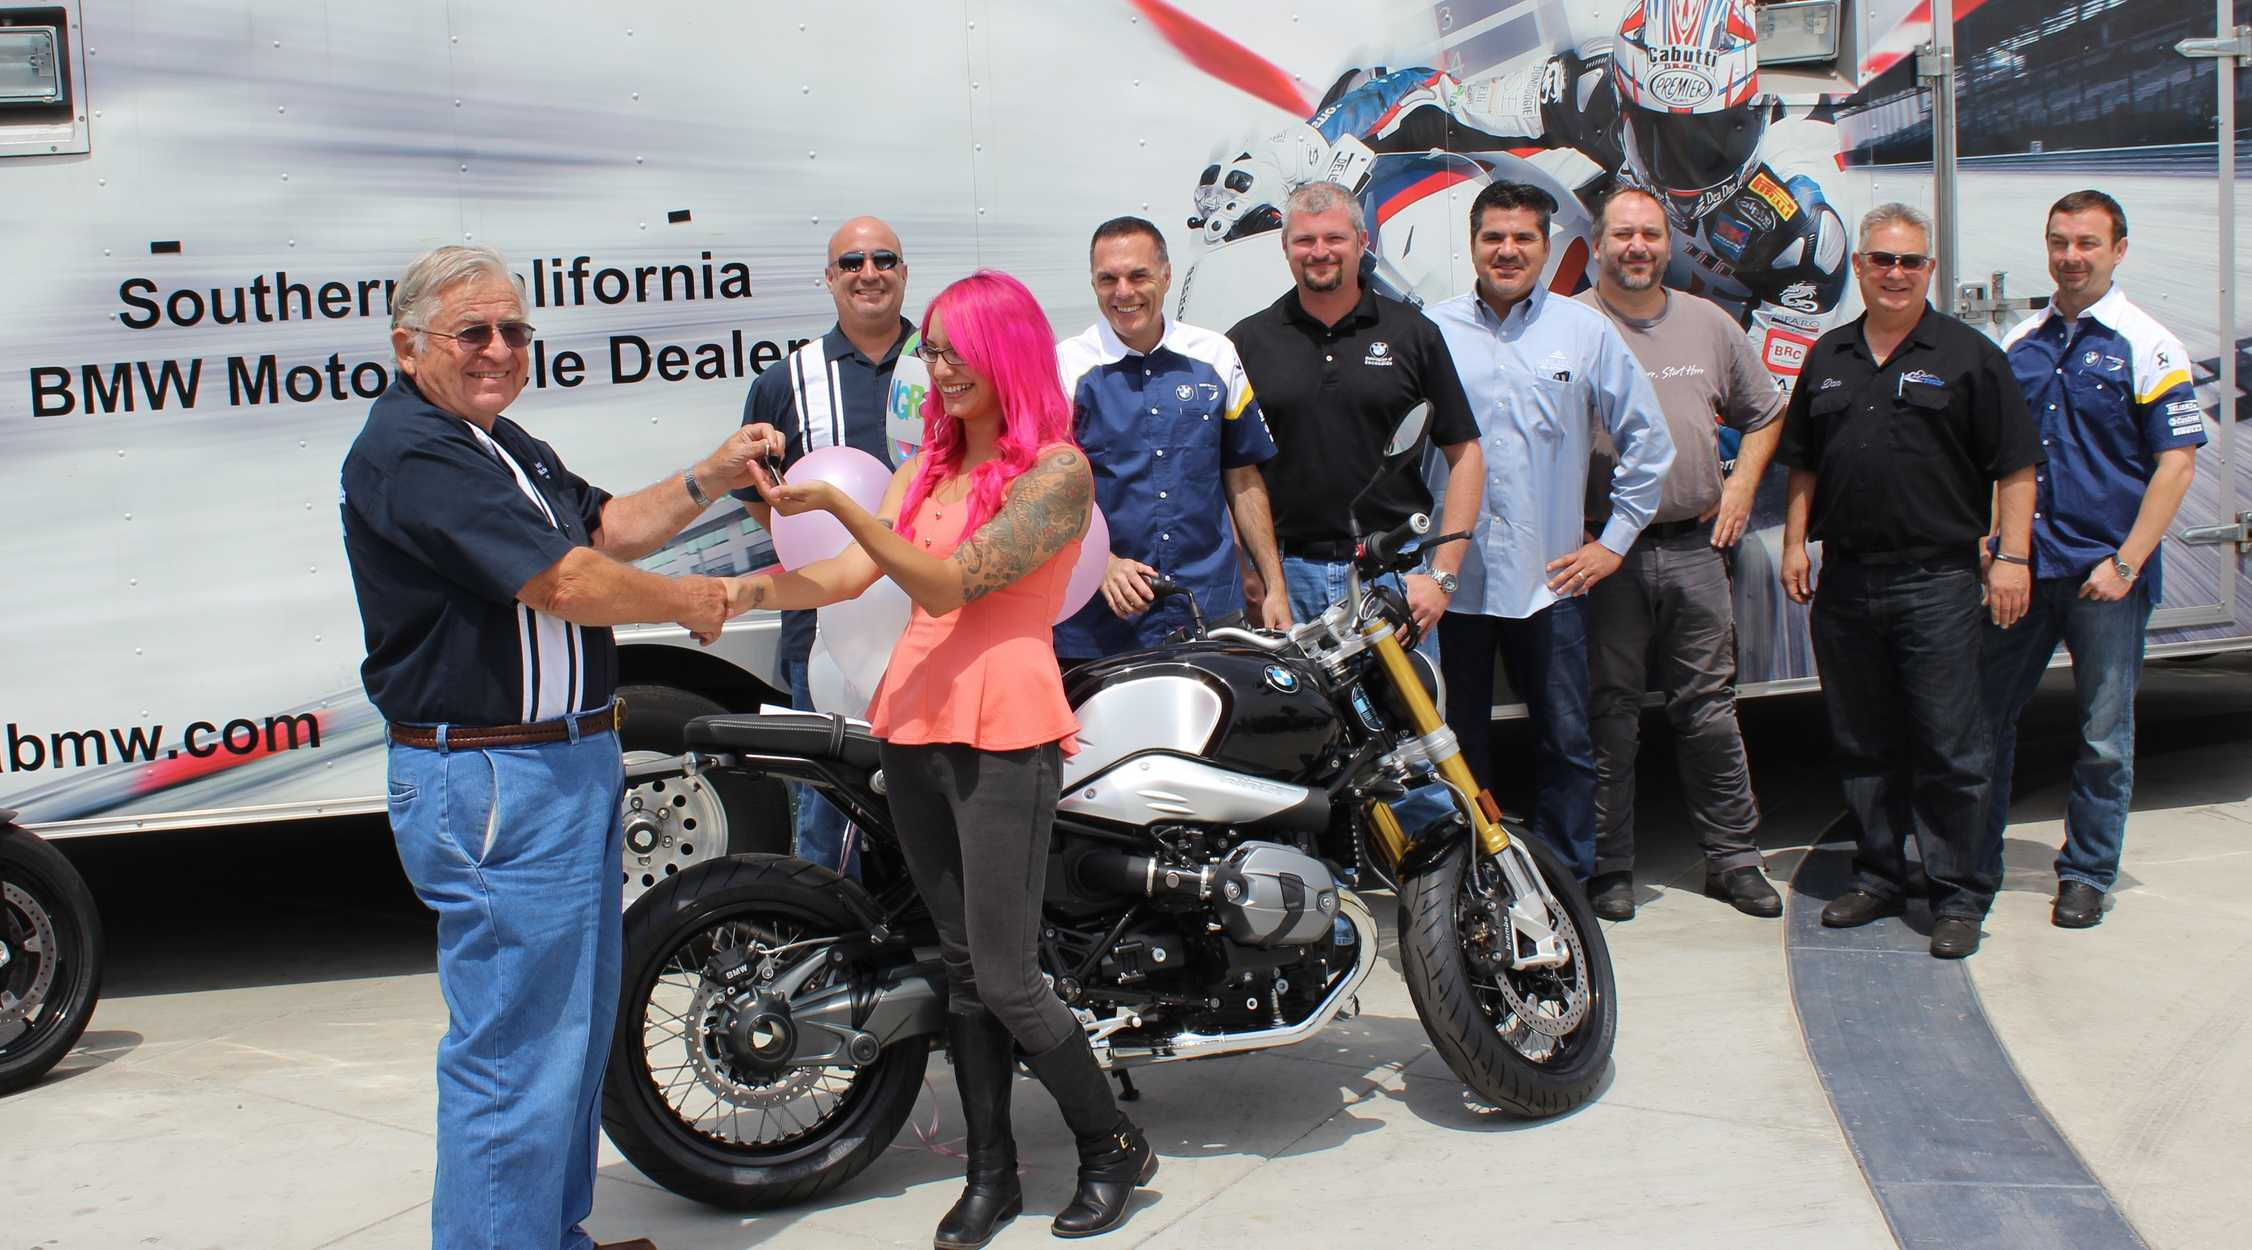 santa ana resident is lucky winner of first socal bmw motorcycle